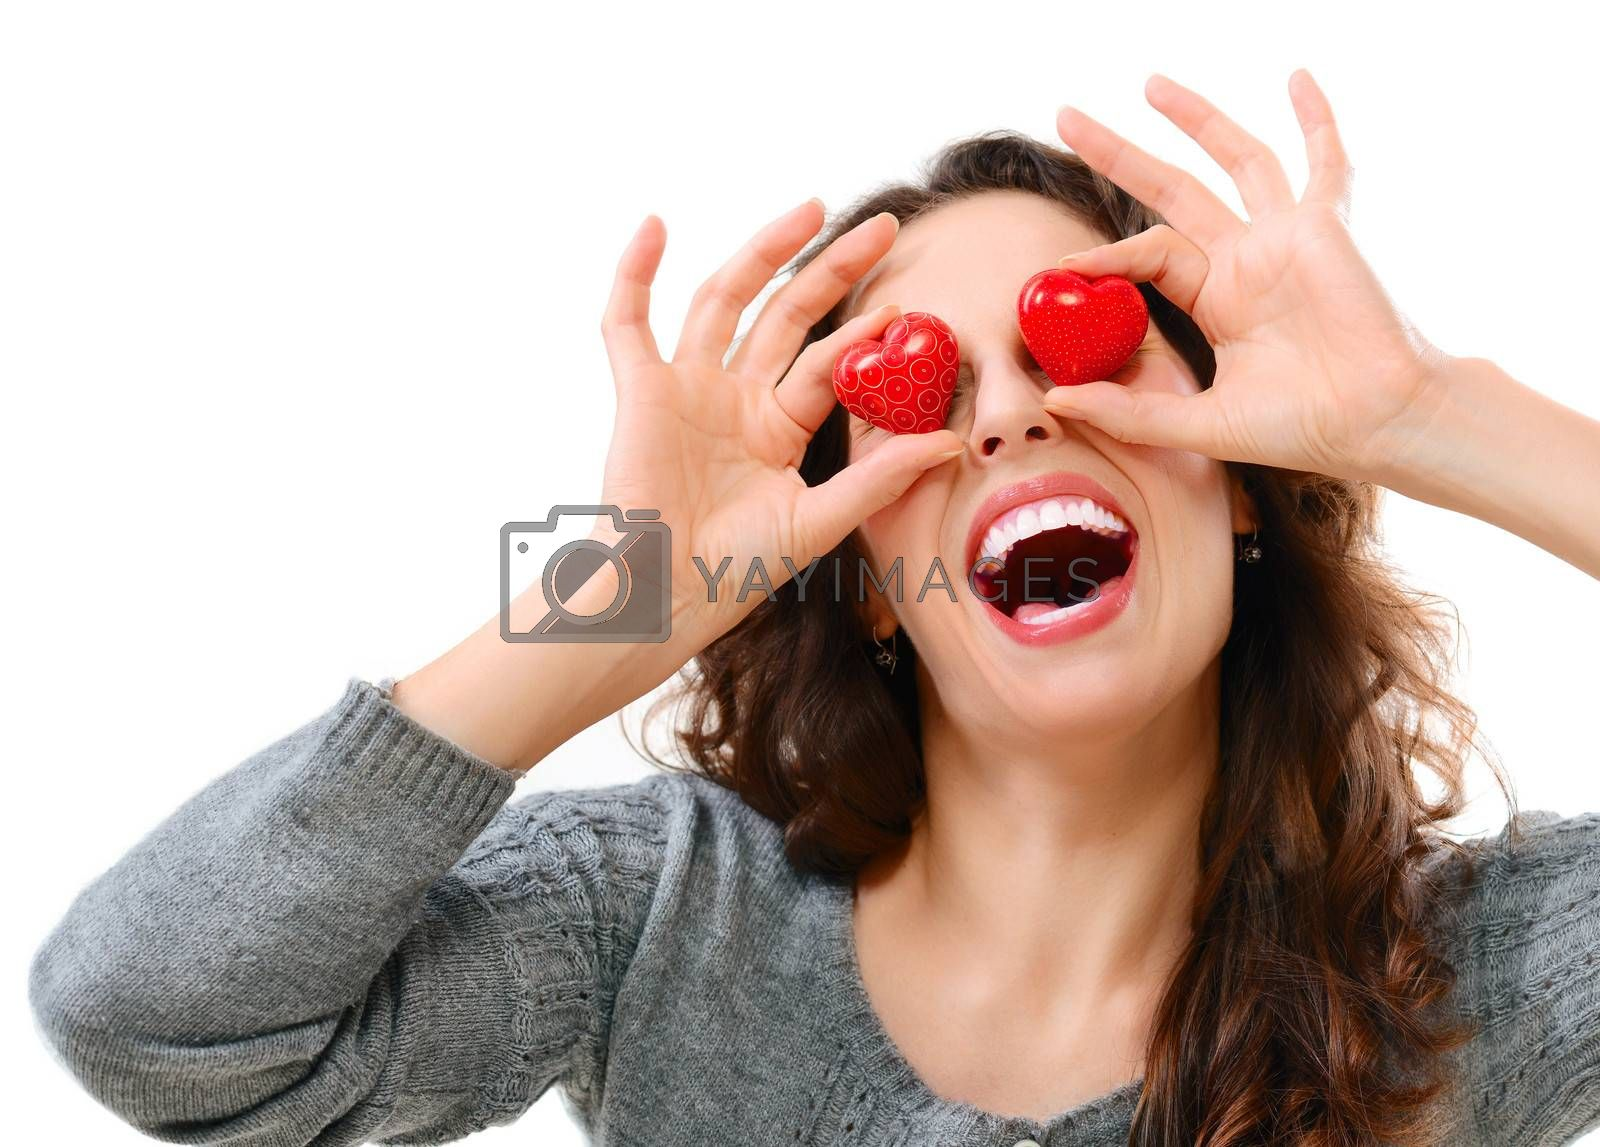 Funny Joyful Girl with Valentine Hearts over her Eyes